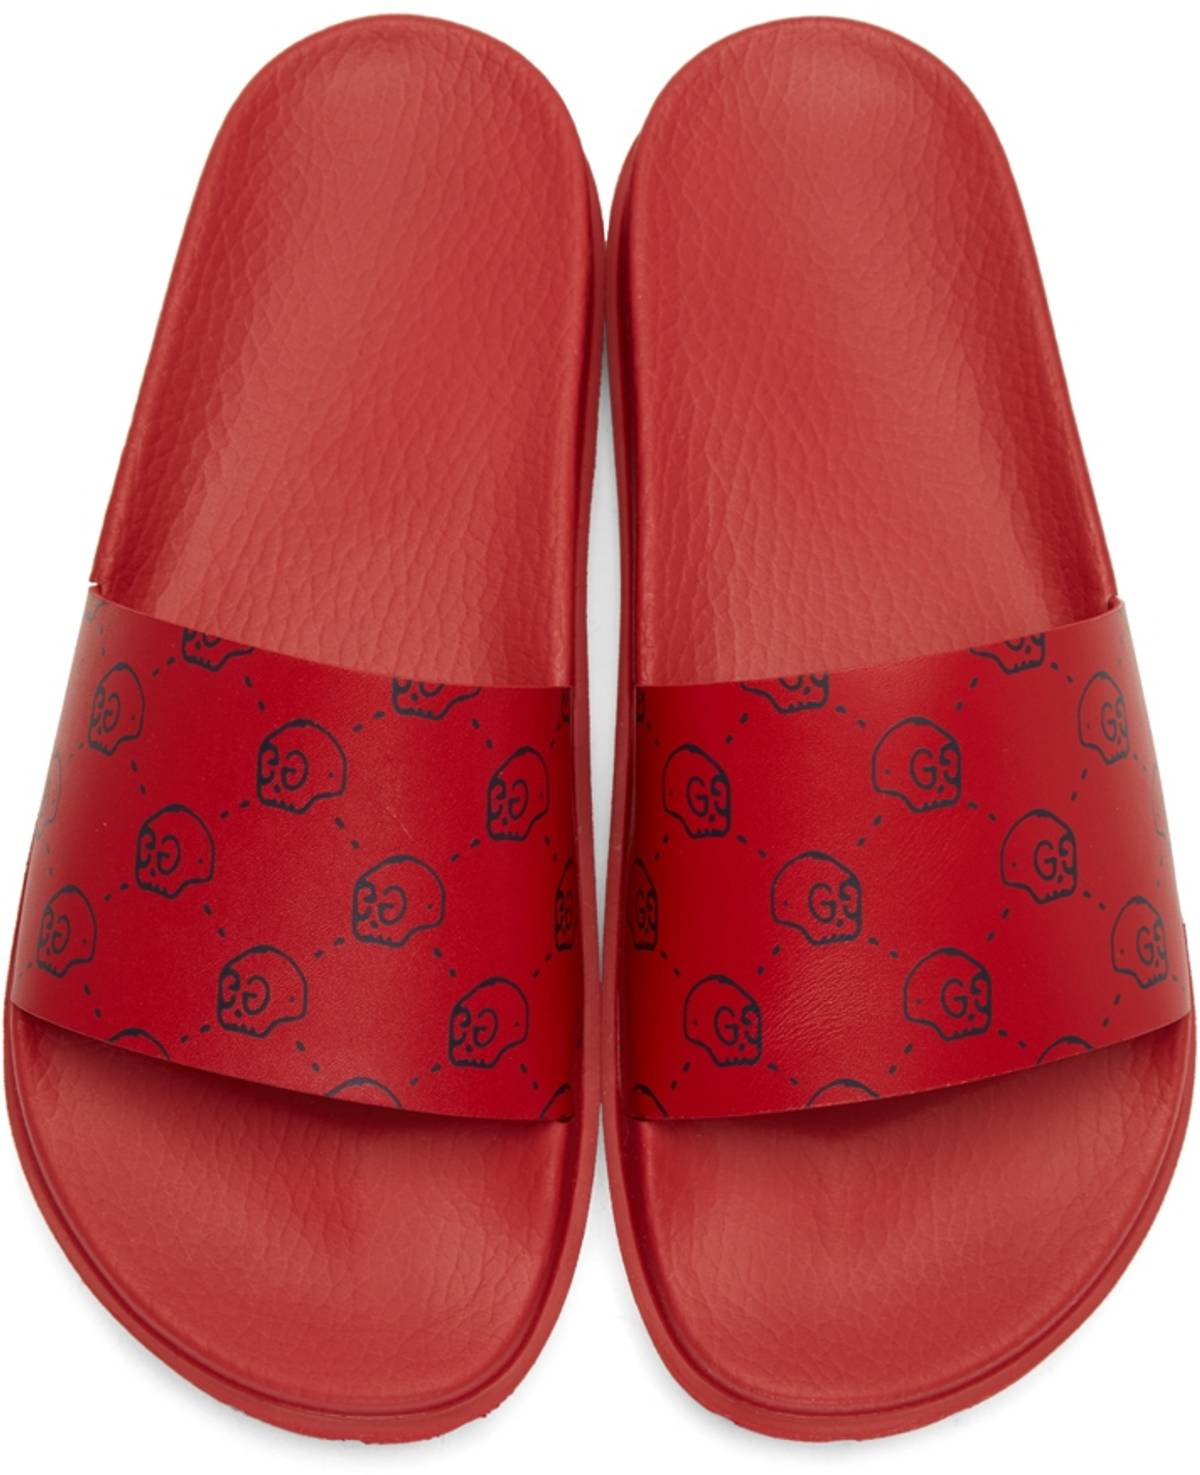 5369dce3b49 Gucci Gucci Ghost Slide Sandals in Red Skull Monogram Size 9.5 ...